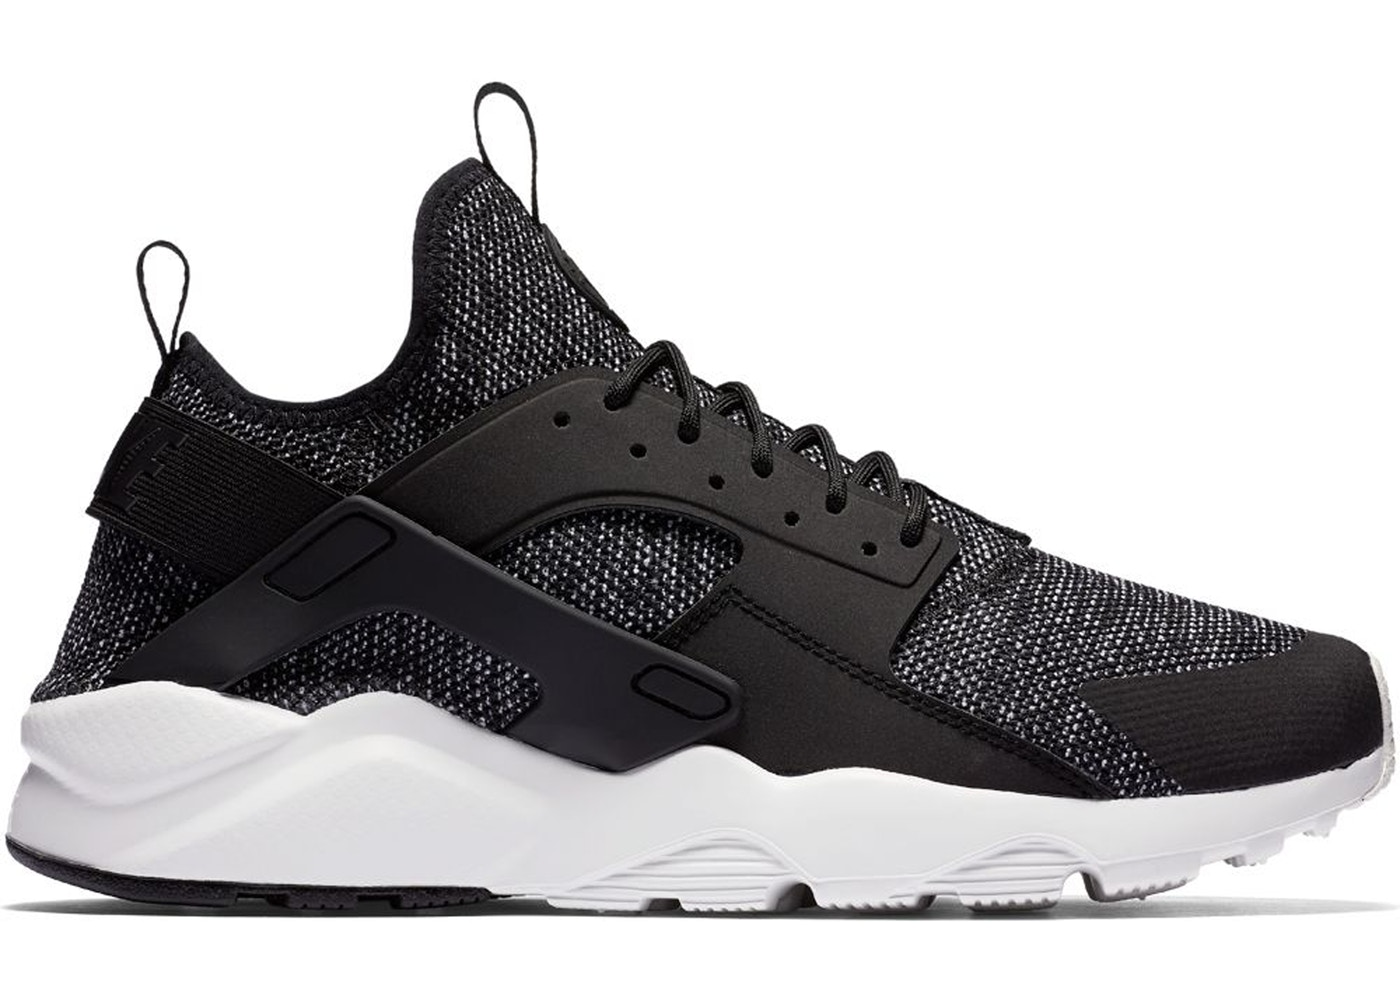 Air Huarache Run Ultra Breathe Black Summit White - 833147-003